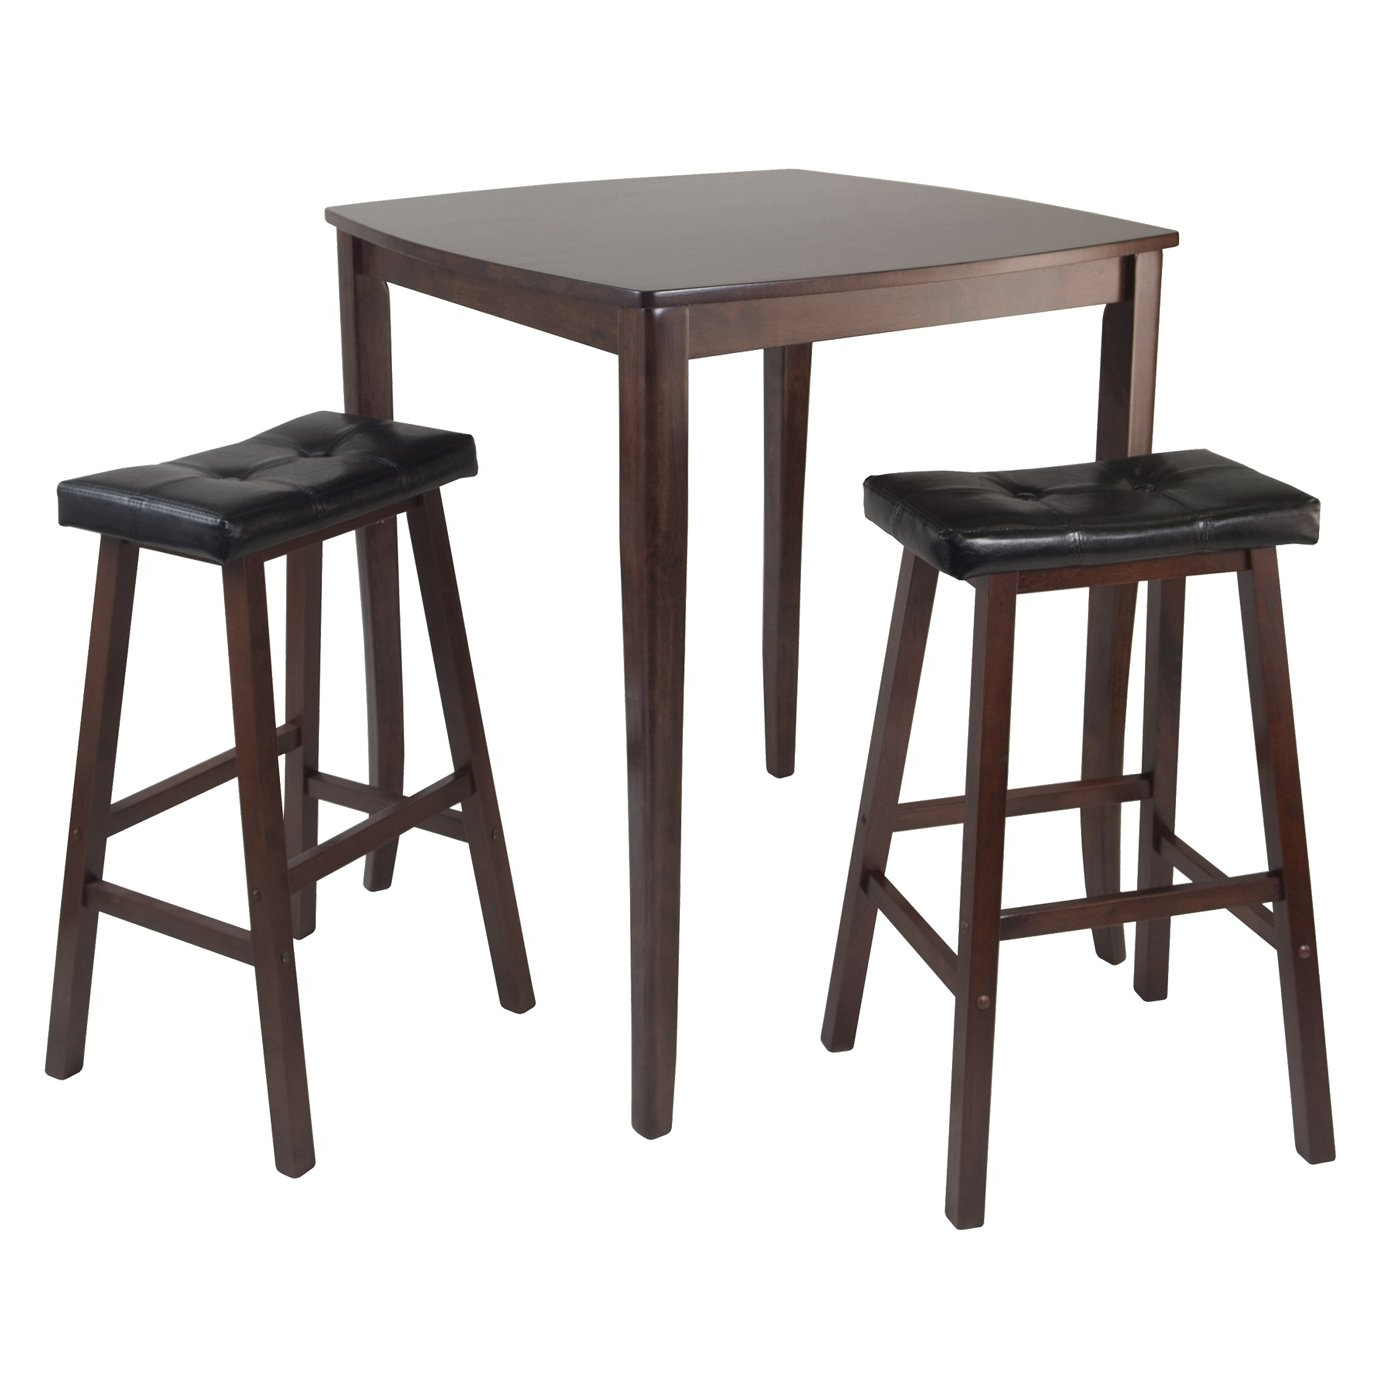 Fashionable Winsome Wood 94360 Inglewood 3 Piece High Pub Table Dining Set With Regard To Winsome 3 Piece Counter Height Dining Sets (Gallery 13 of 20)